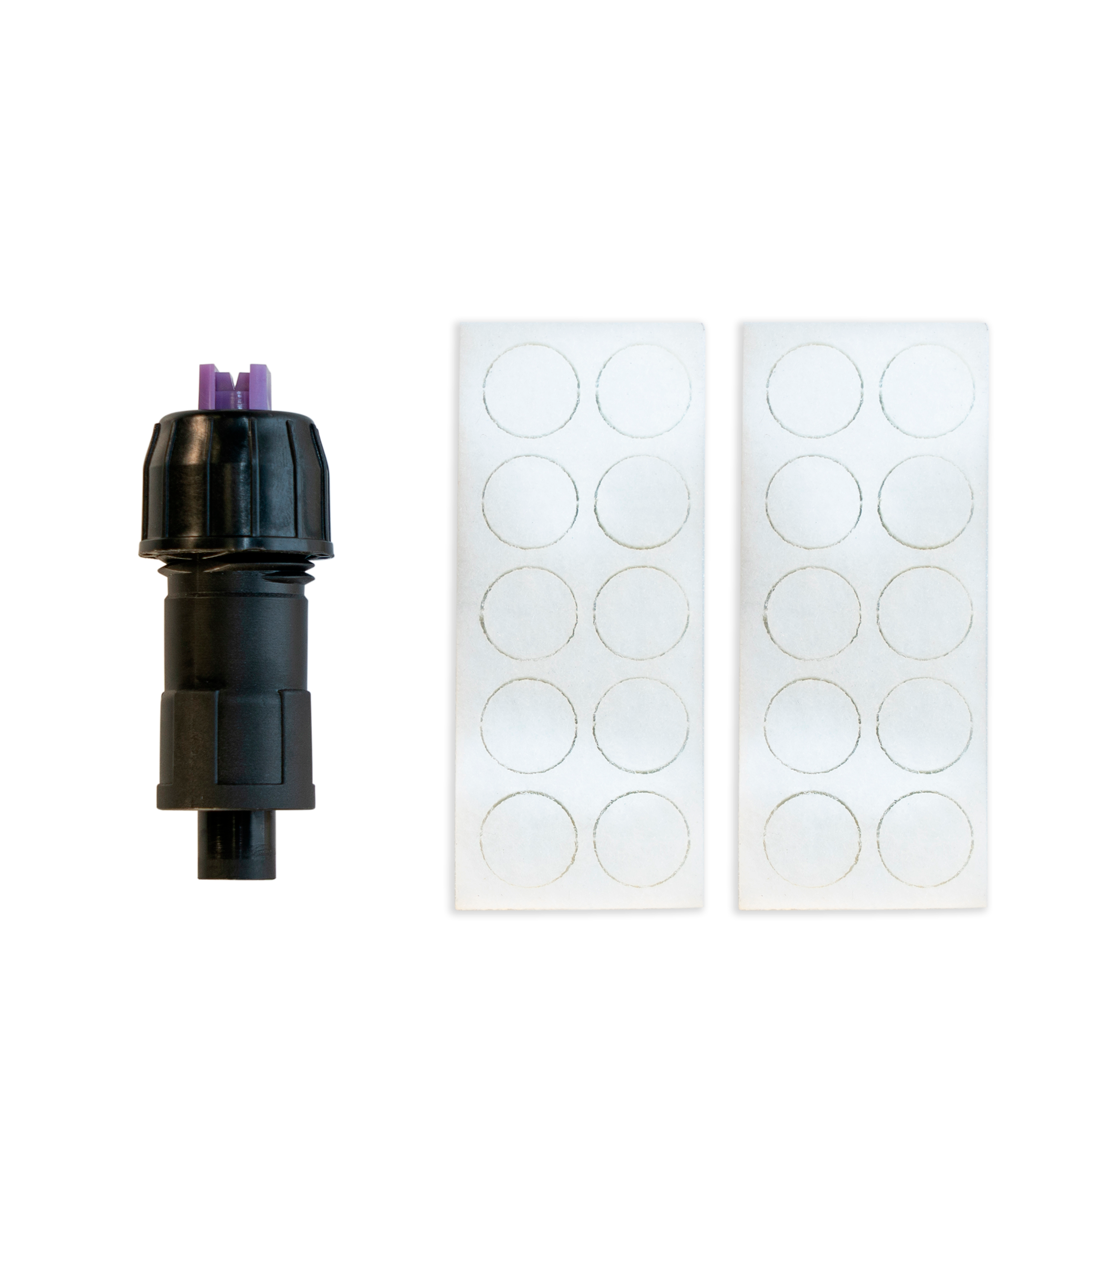 Load image into Gallery viewer, Foam and Nozzle Kit for Foam 1.5 and Pro 2 Sprayers